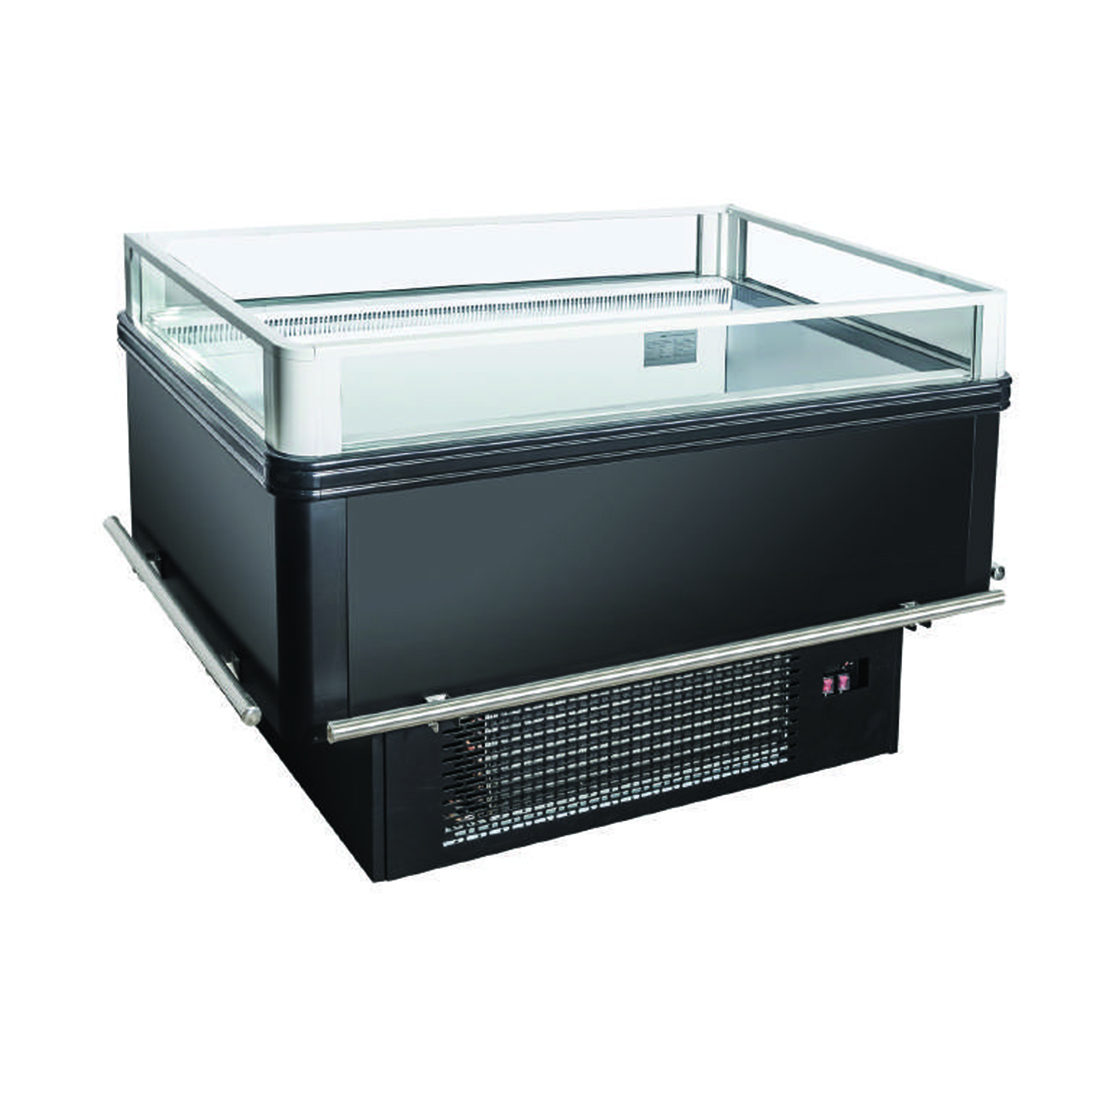 Kool-It KII 420 Merchandiser, Open Refrigerated Display